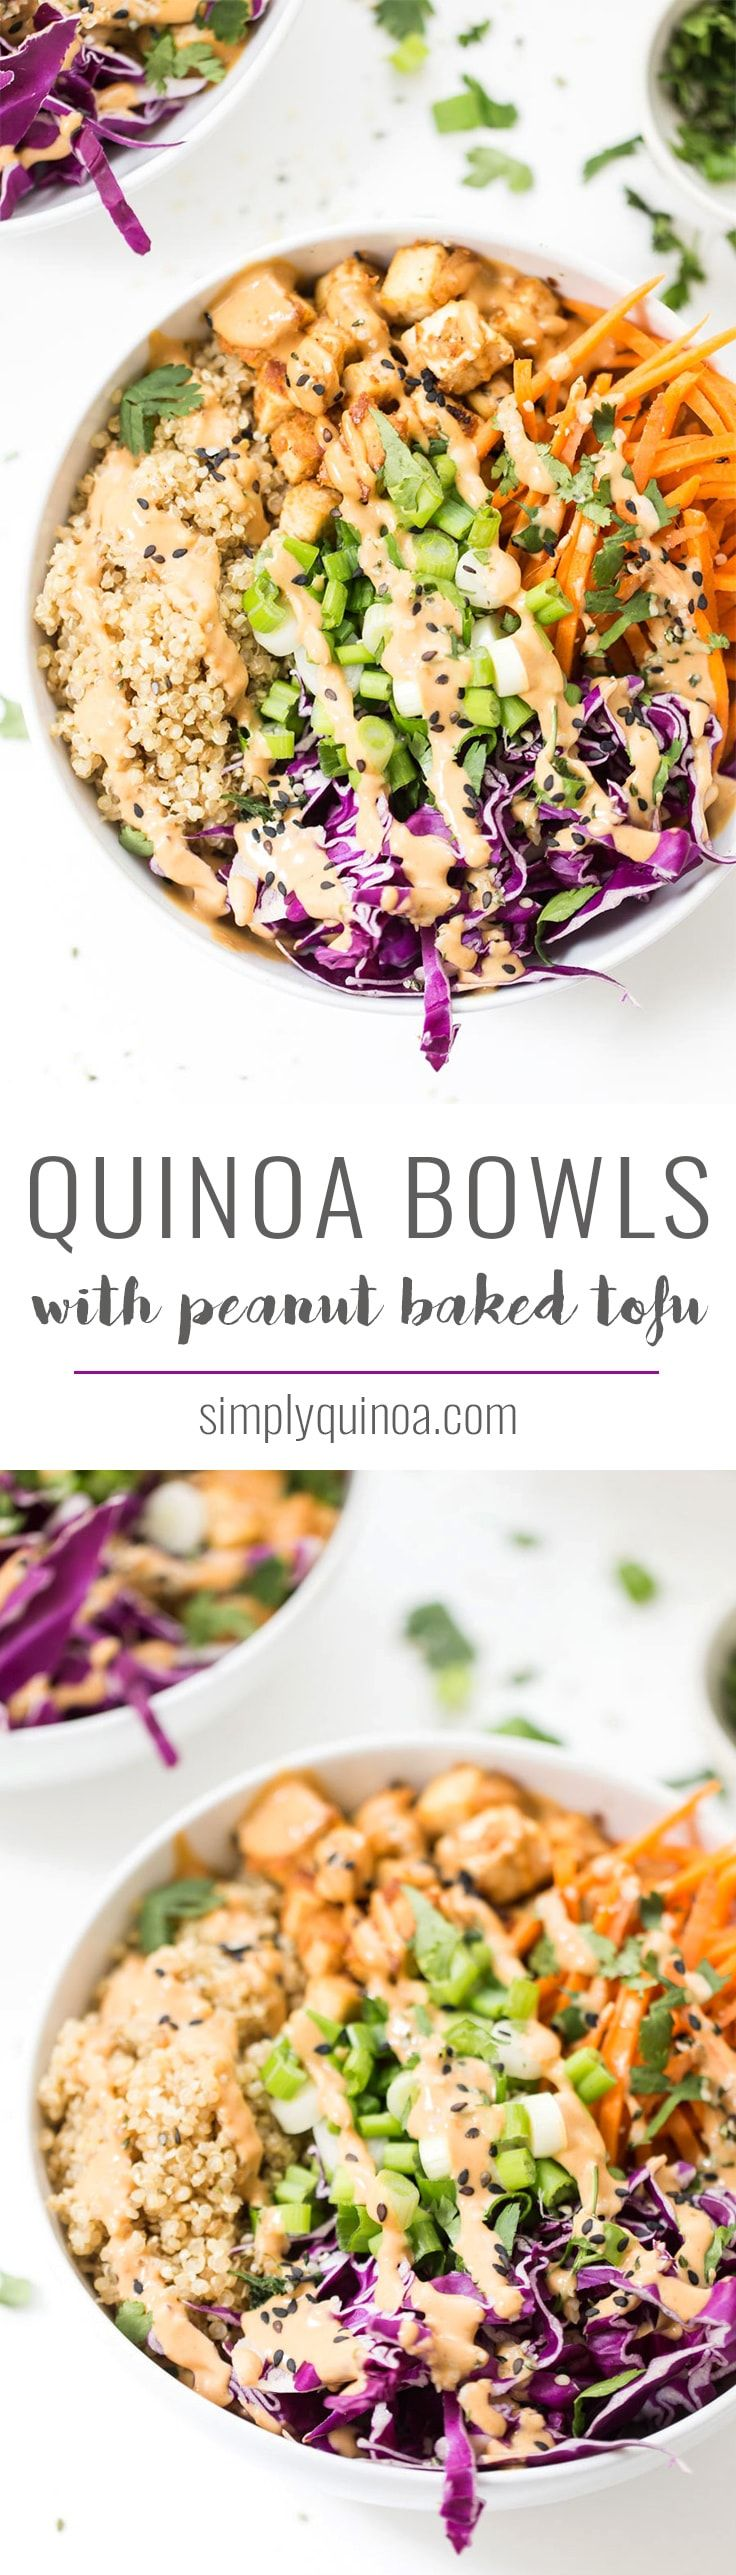 Kick your dinner up a notch with these ASIAN QUINOA BOWLS! With fluffy ginger quinoa, crunchy veggies, crispy baked tofu and a creamy peanut sauce! with @almondbreeze #ad